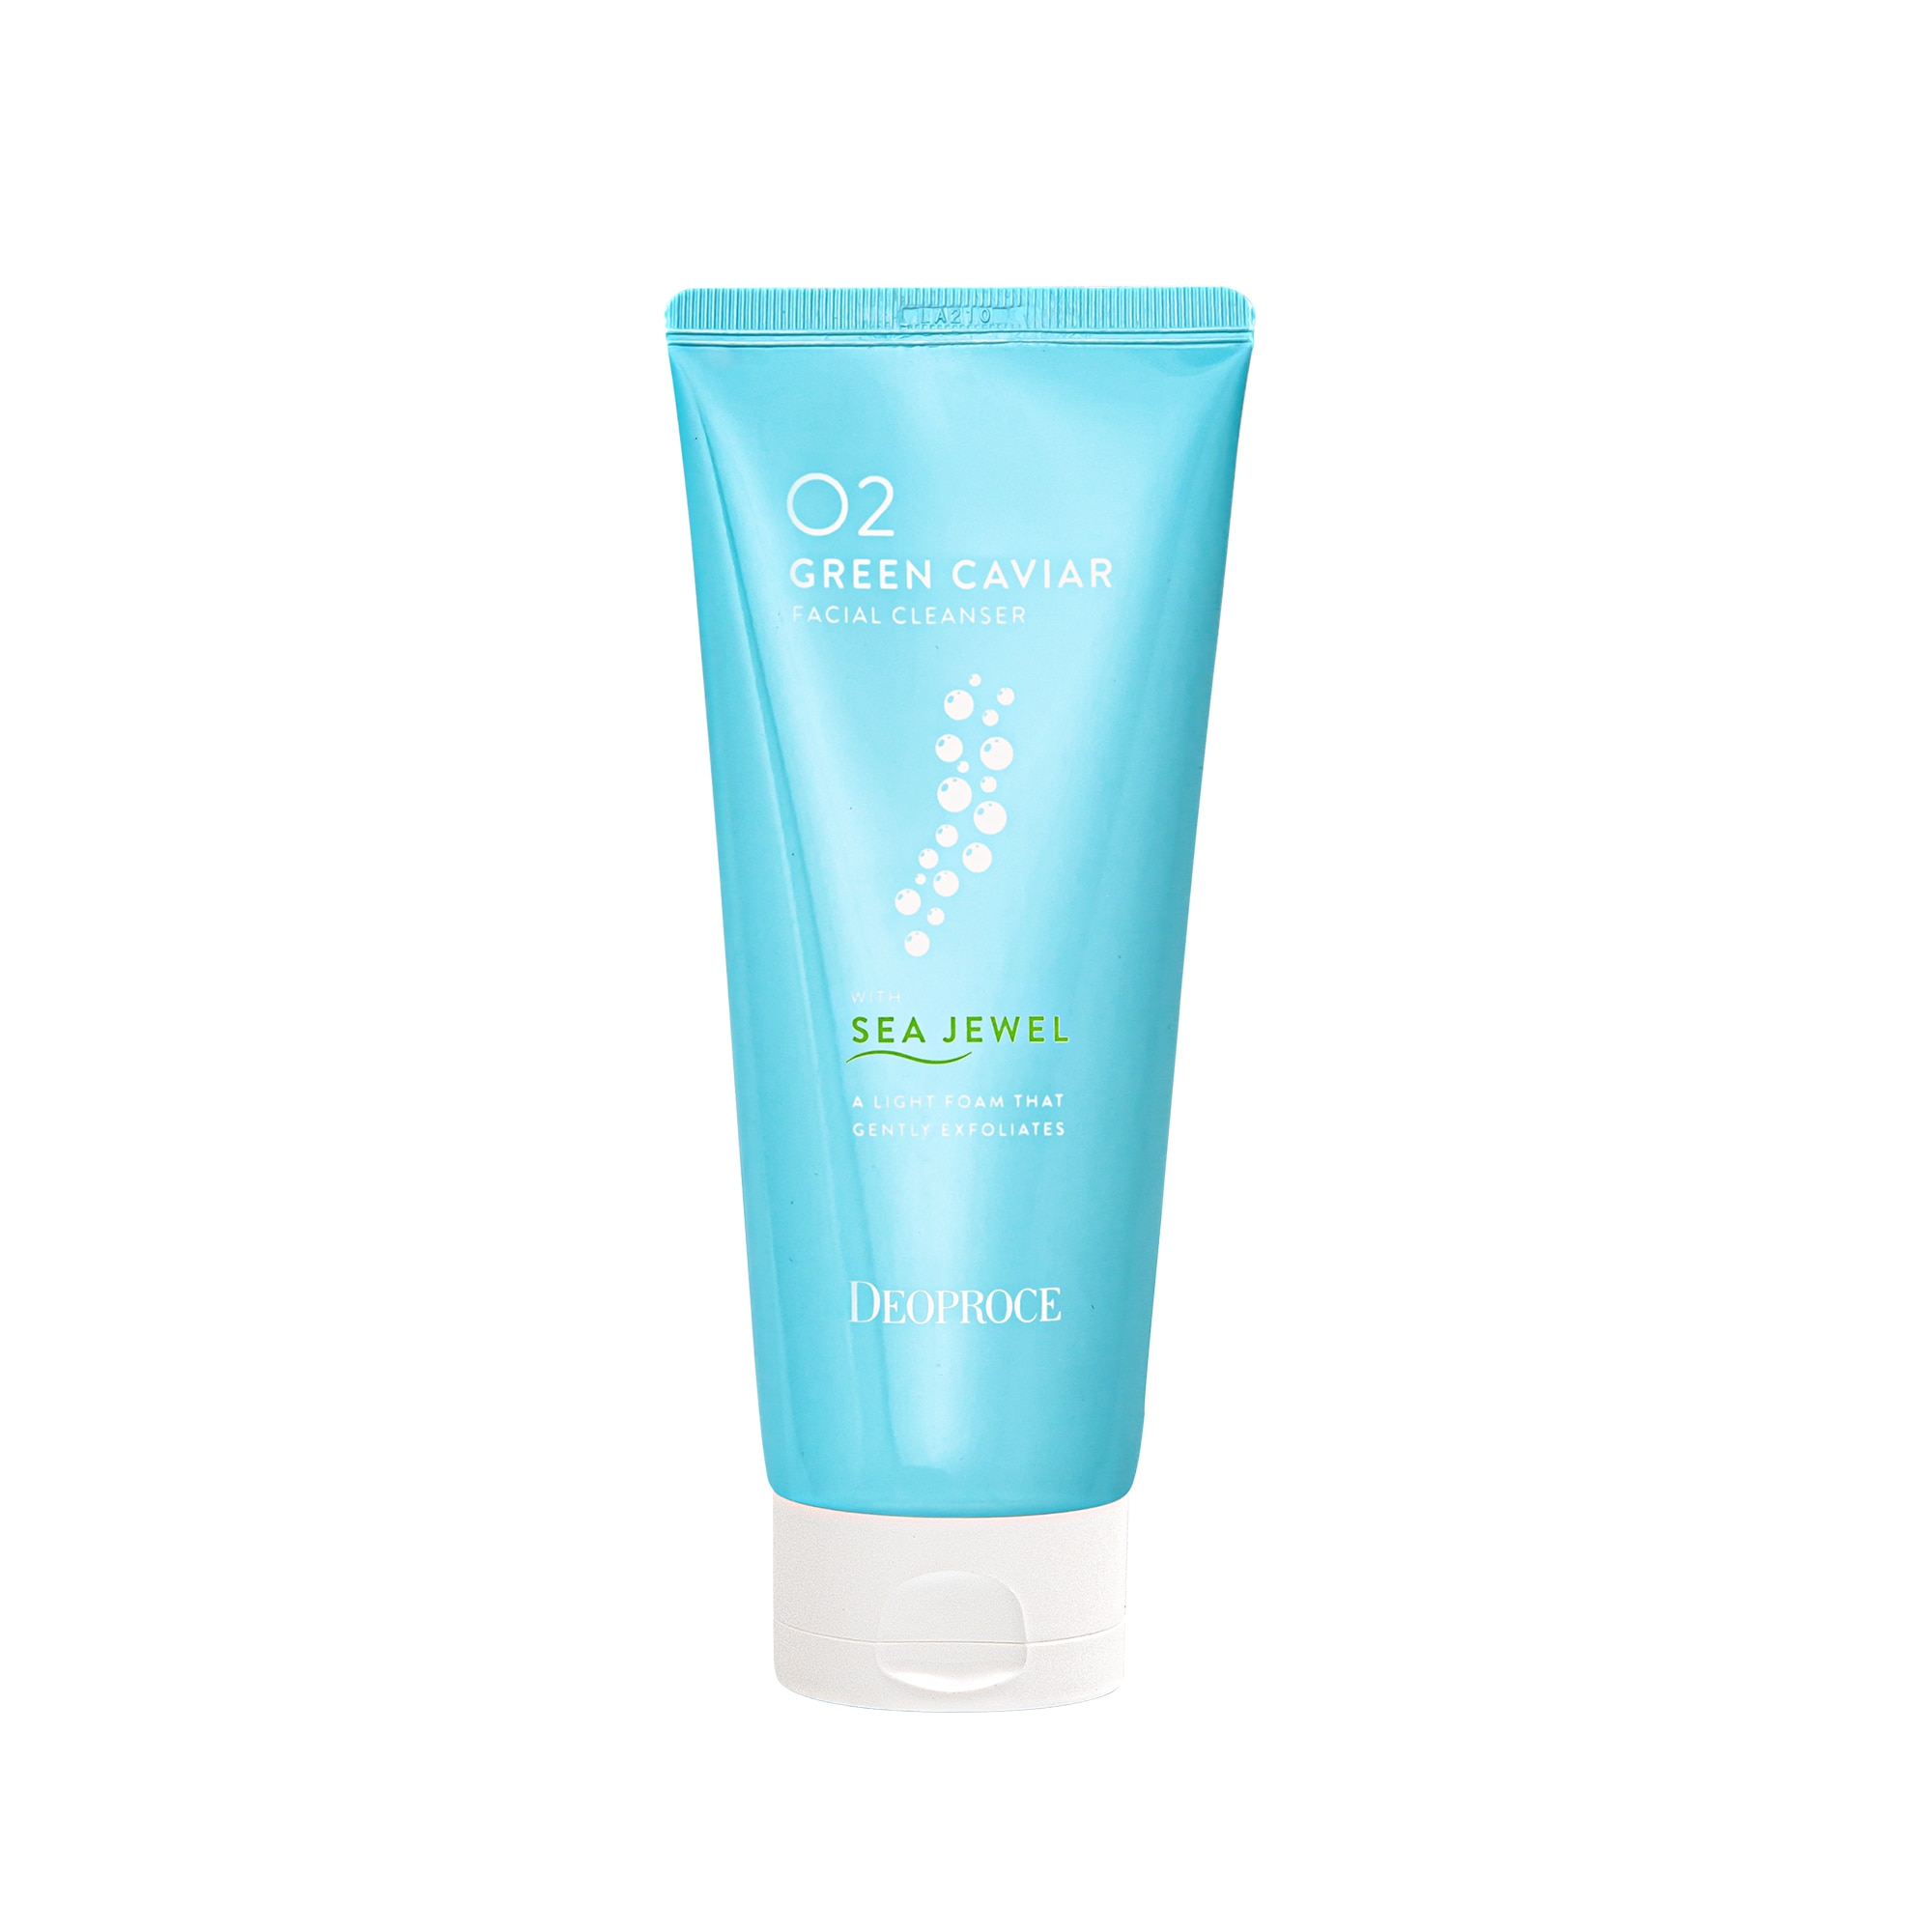 DEOPROCEHMB Green Caviar Facial Cleanser 170g,For WomenDeoproce Green Caviar